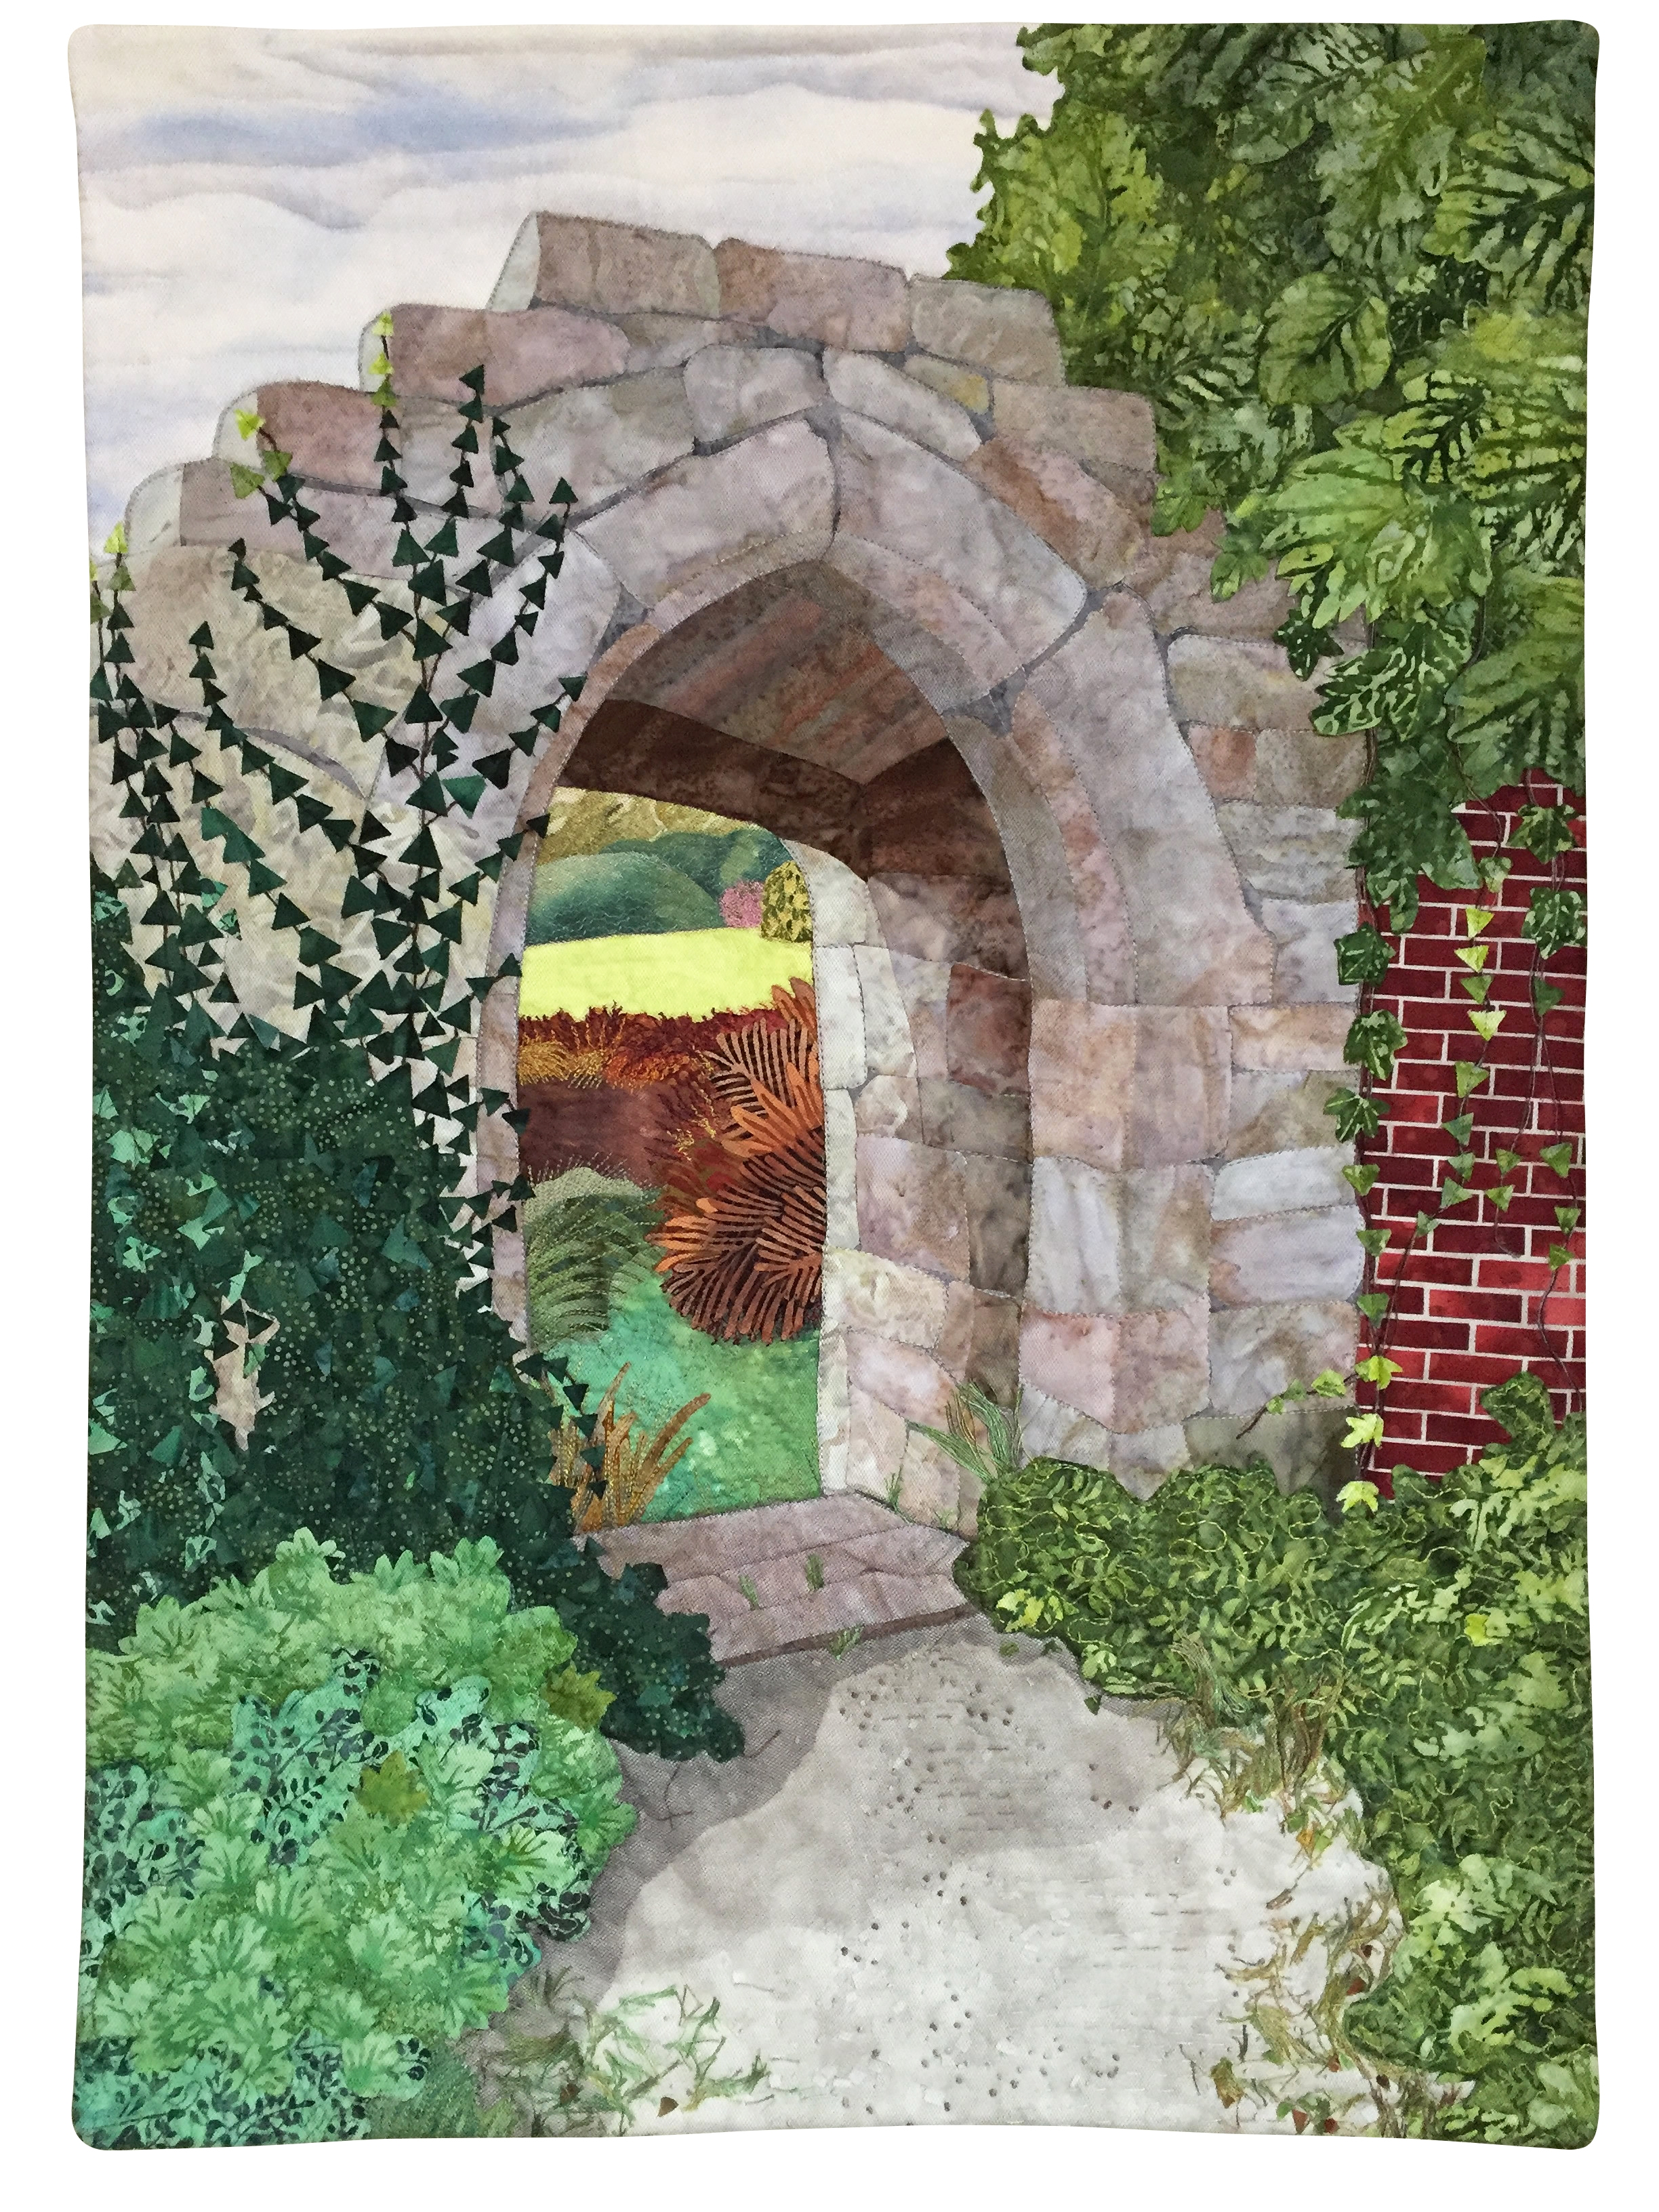 Archway at Scotney Castle